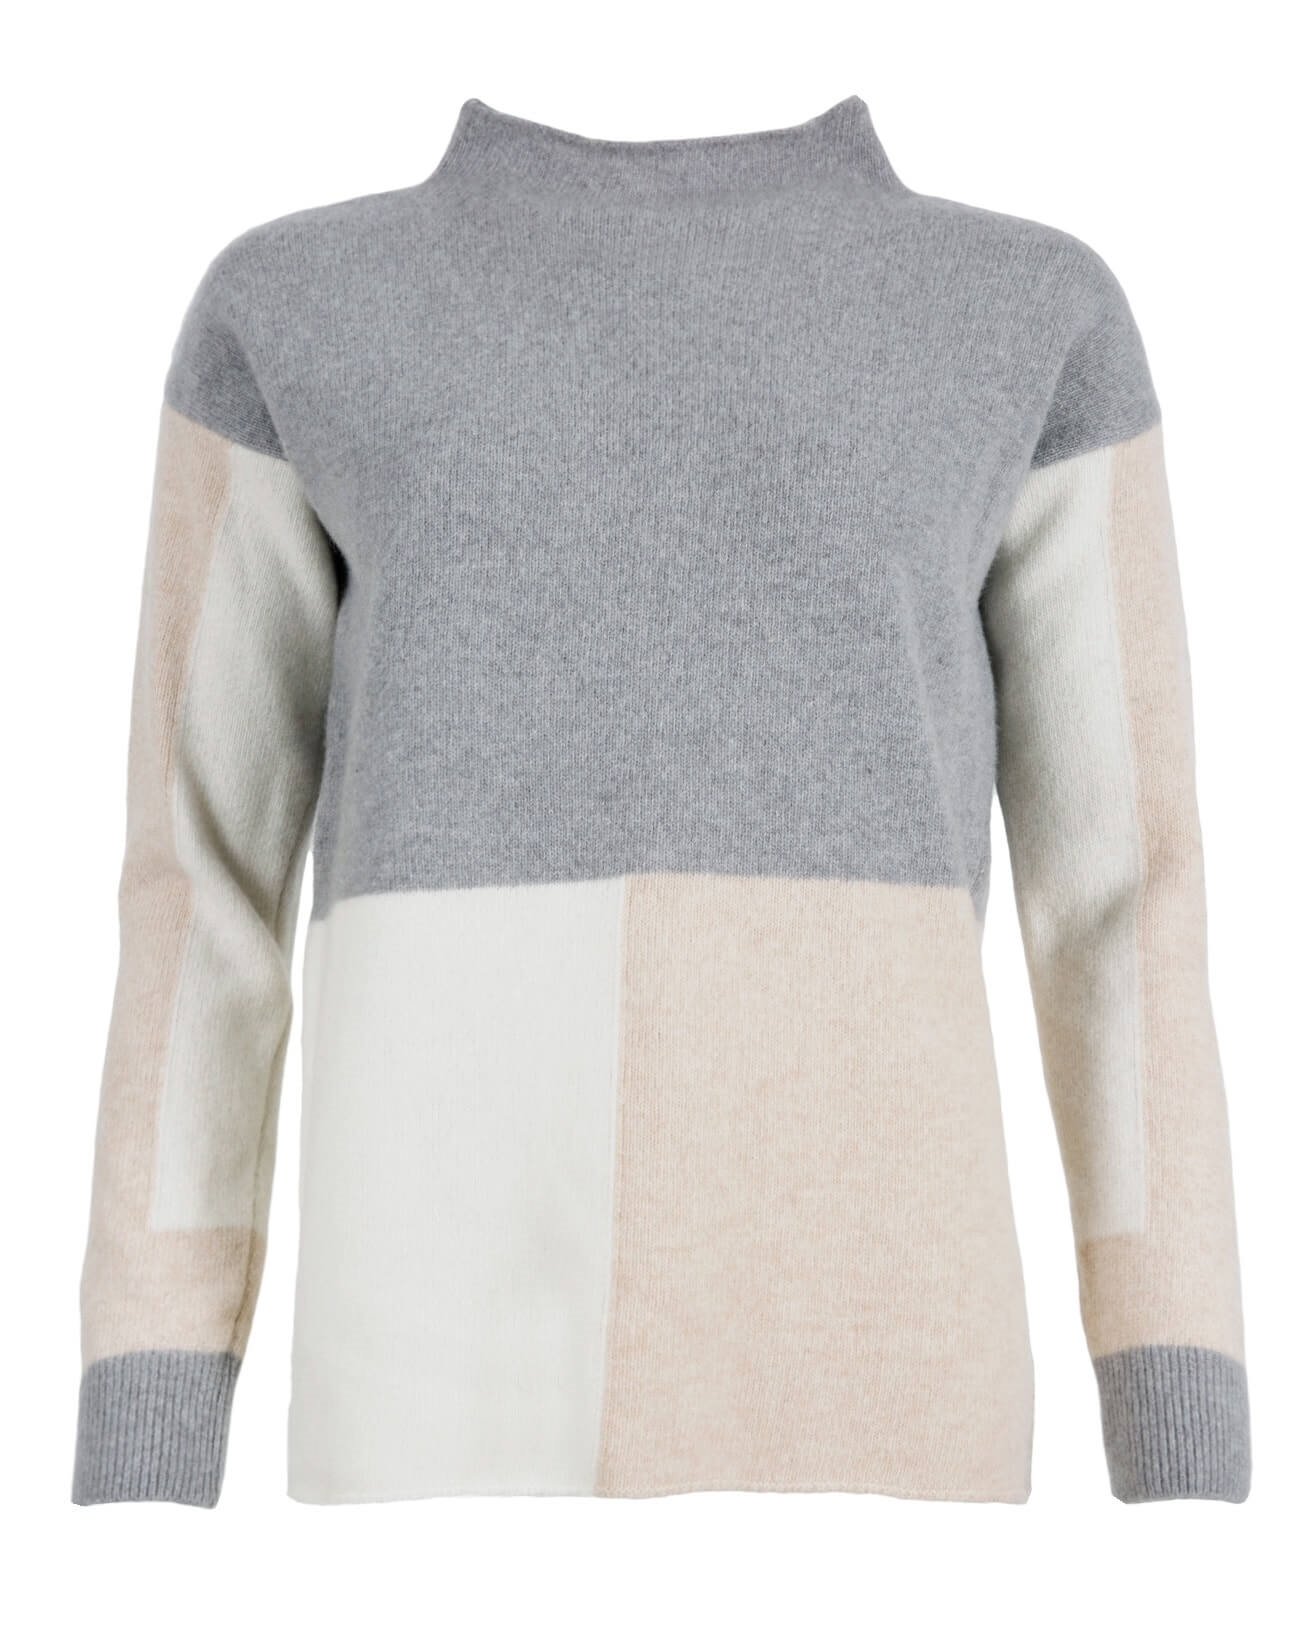 7576-colourblock-funnel-neck-grey-colourblock-front_comp.jpg